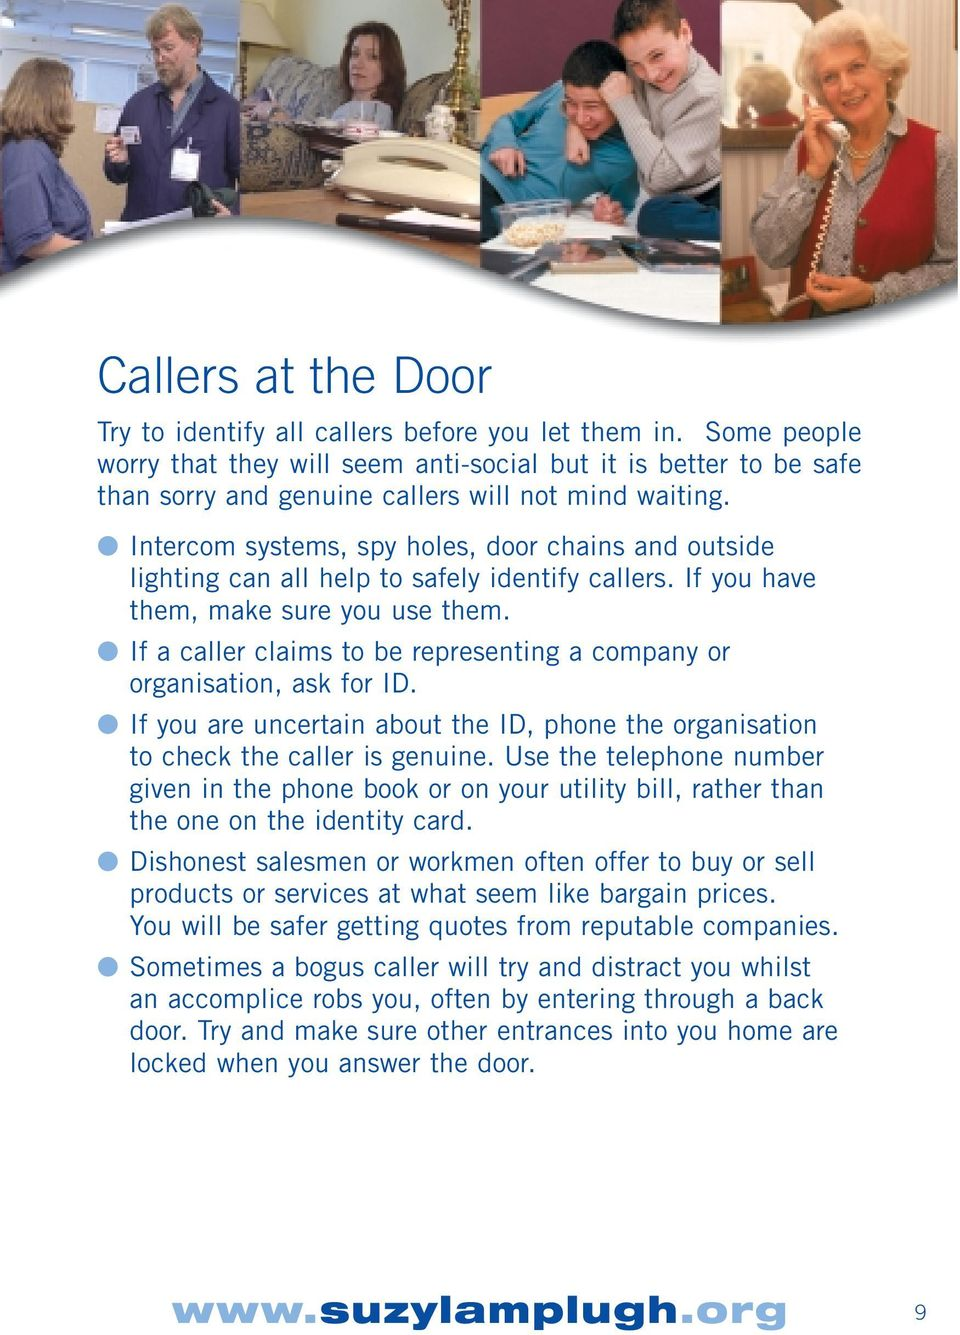 Intercom systems, spy holes, door chains and outside lighting can all help to safely identify callers. If you have them, make sure you use them.